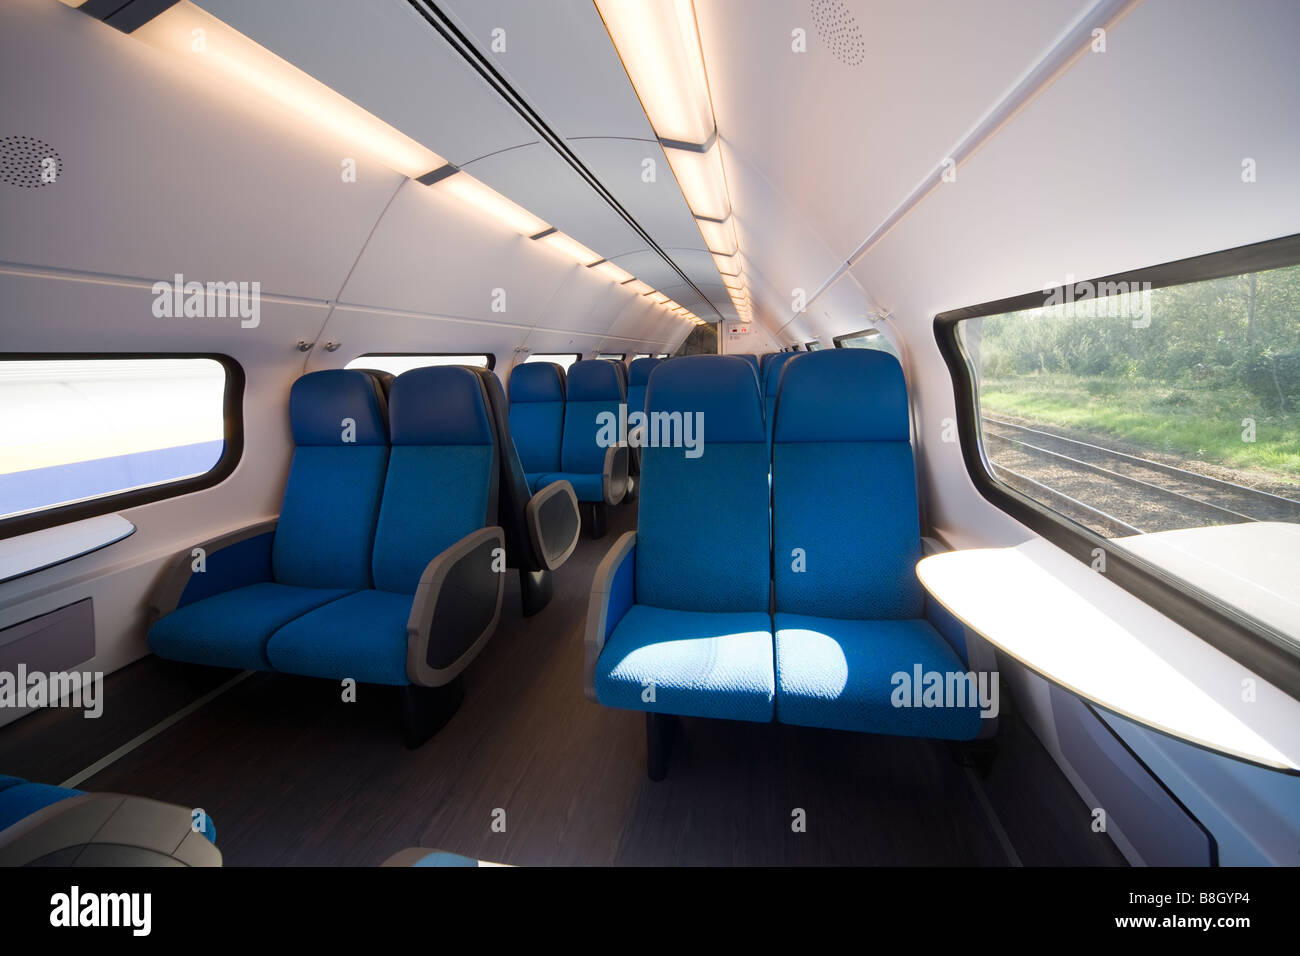 Interior of the upper deck of a double-decker or bi-level car Dutch commuter train. - Stock Image